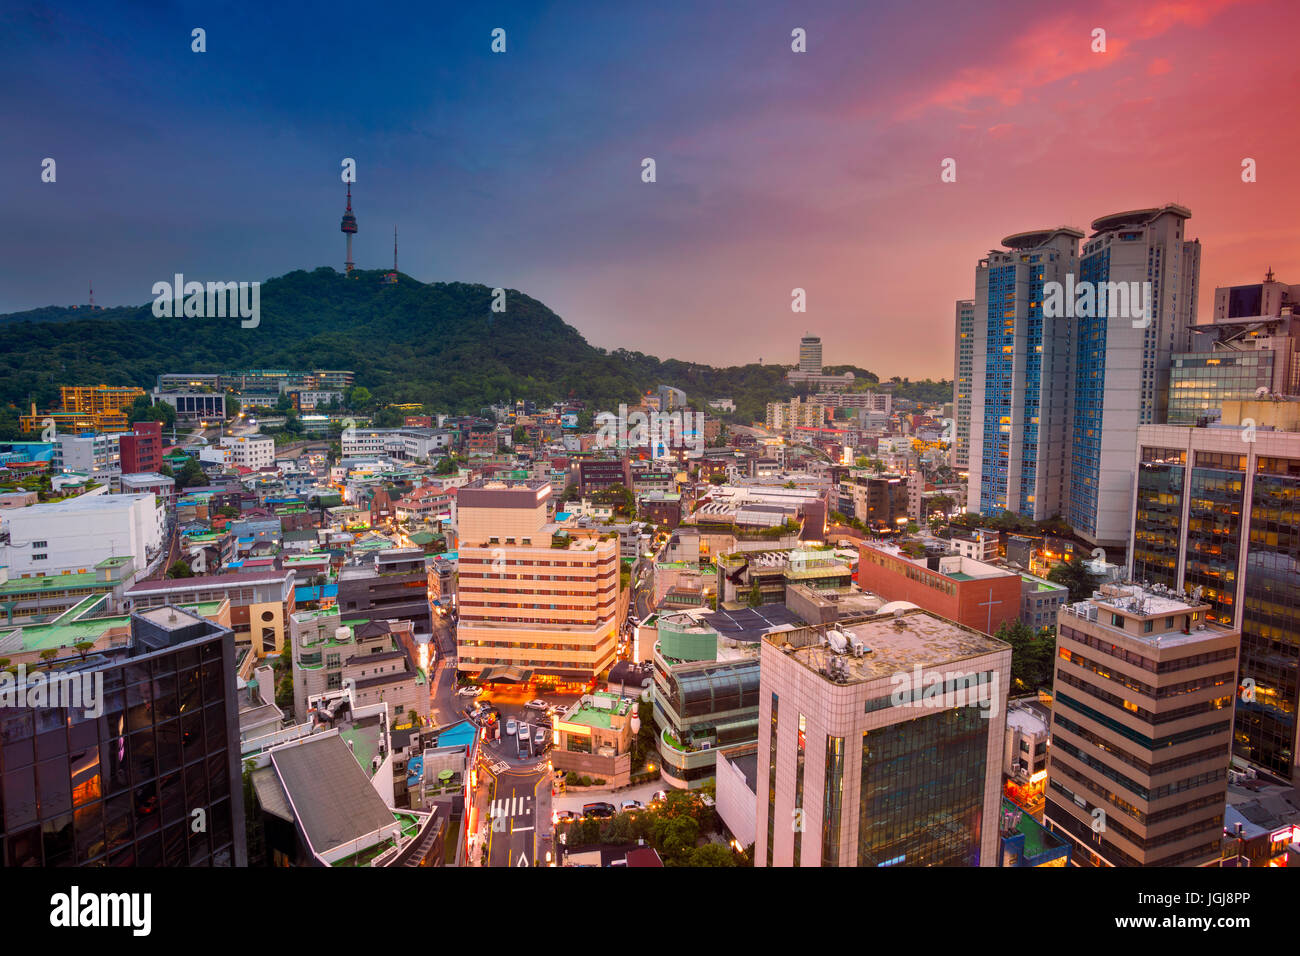 Seoul. Image of Seoul downtown during twilight blue hour. Stock Photo